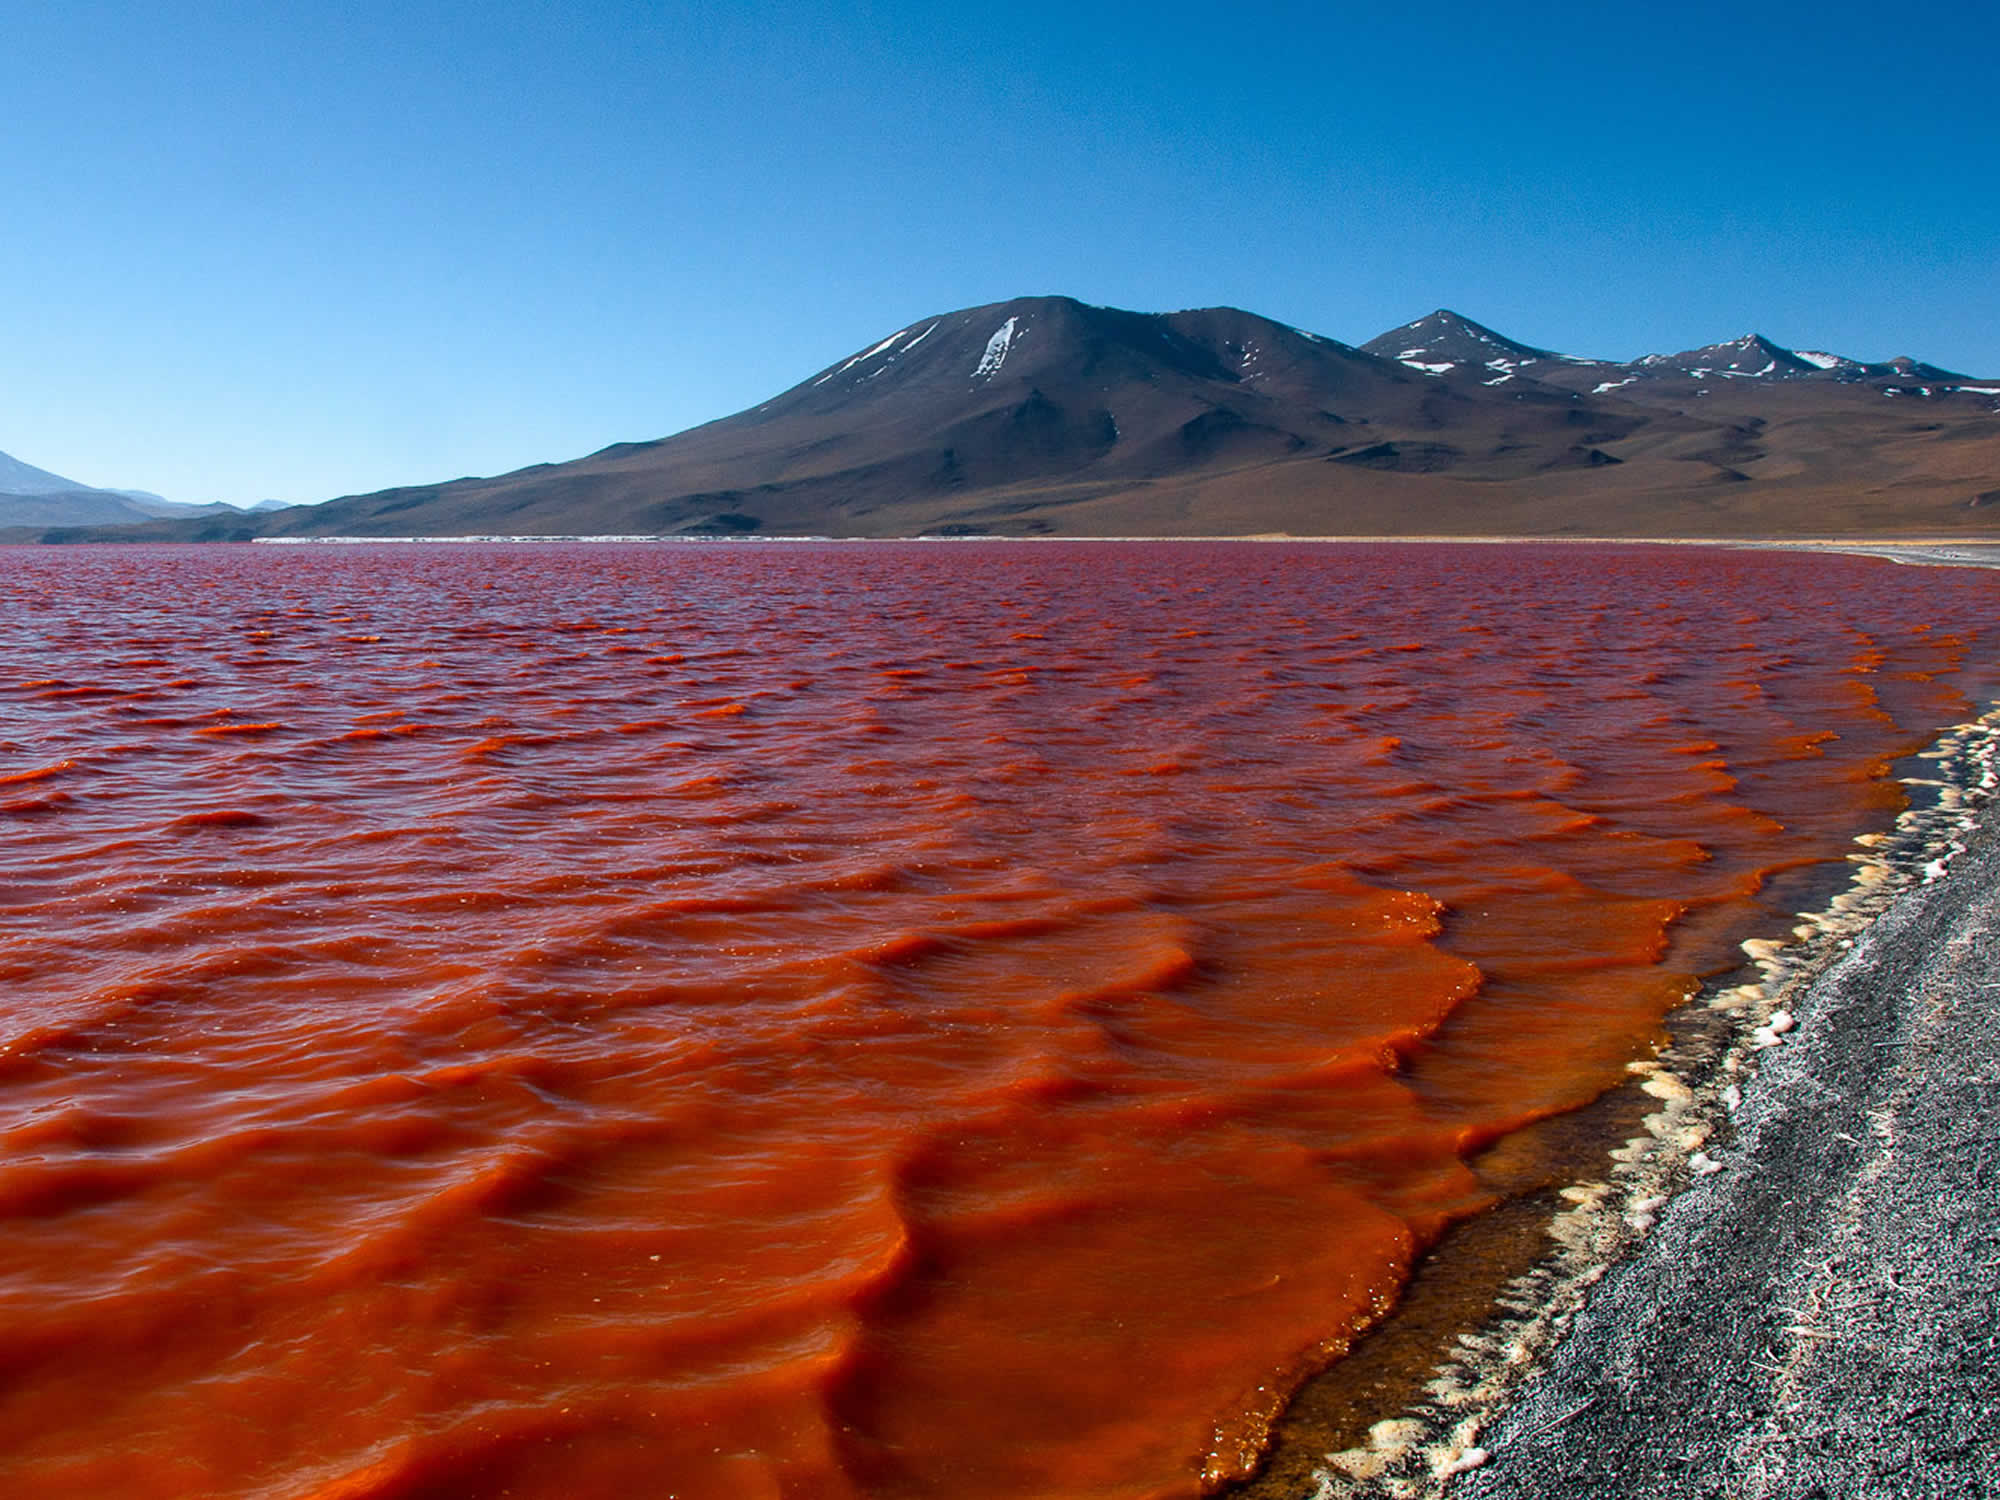 The Red lagoon looks like a lake of blood